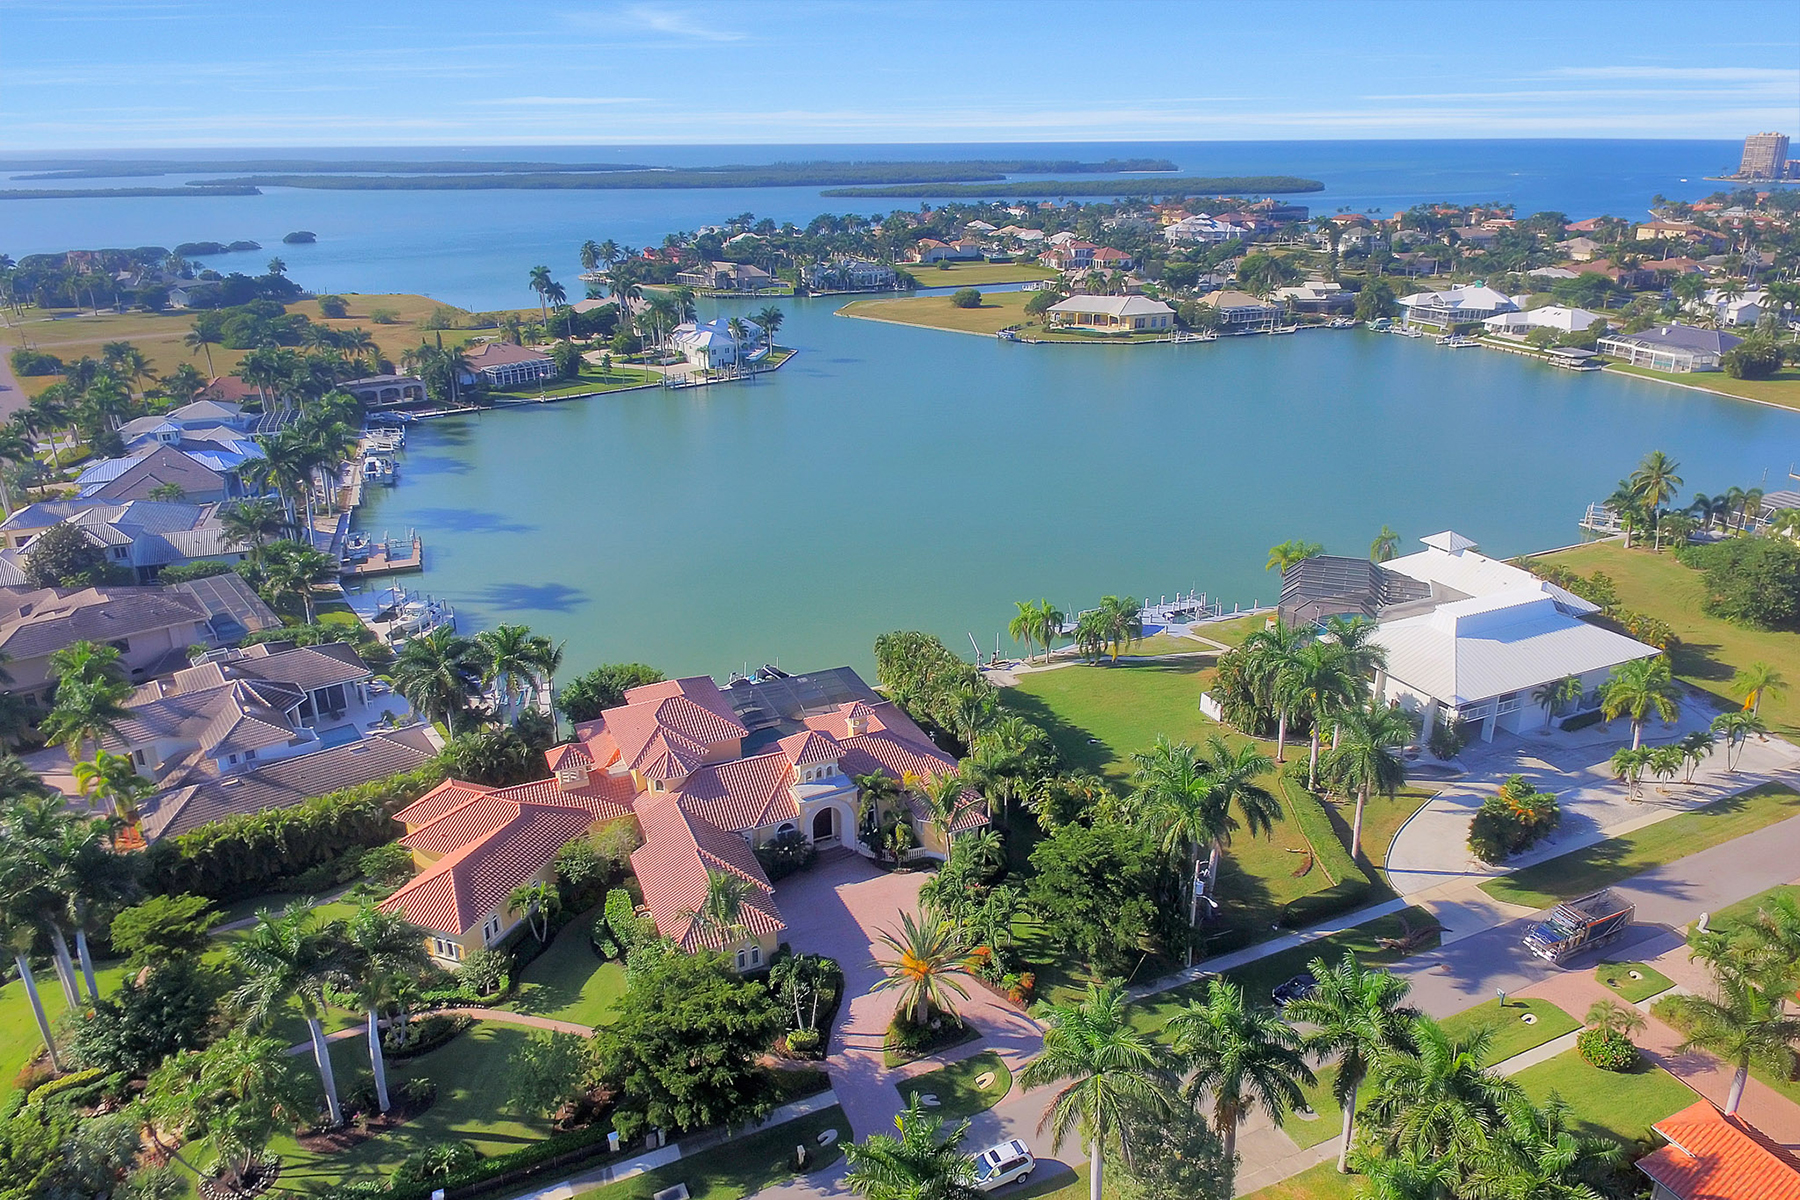 Single Family Home for Sale at MARCO ISLAND - LUDLOW 1751 Ludlow Rd Marco Island, Florida, 34145 United States